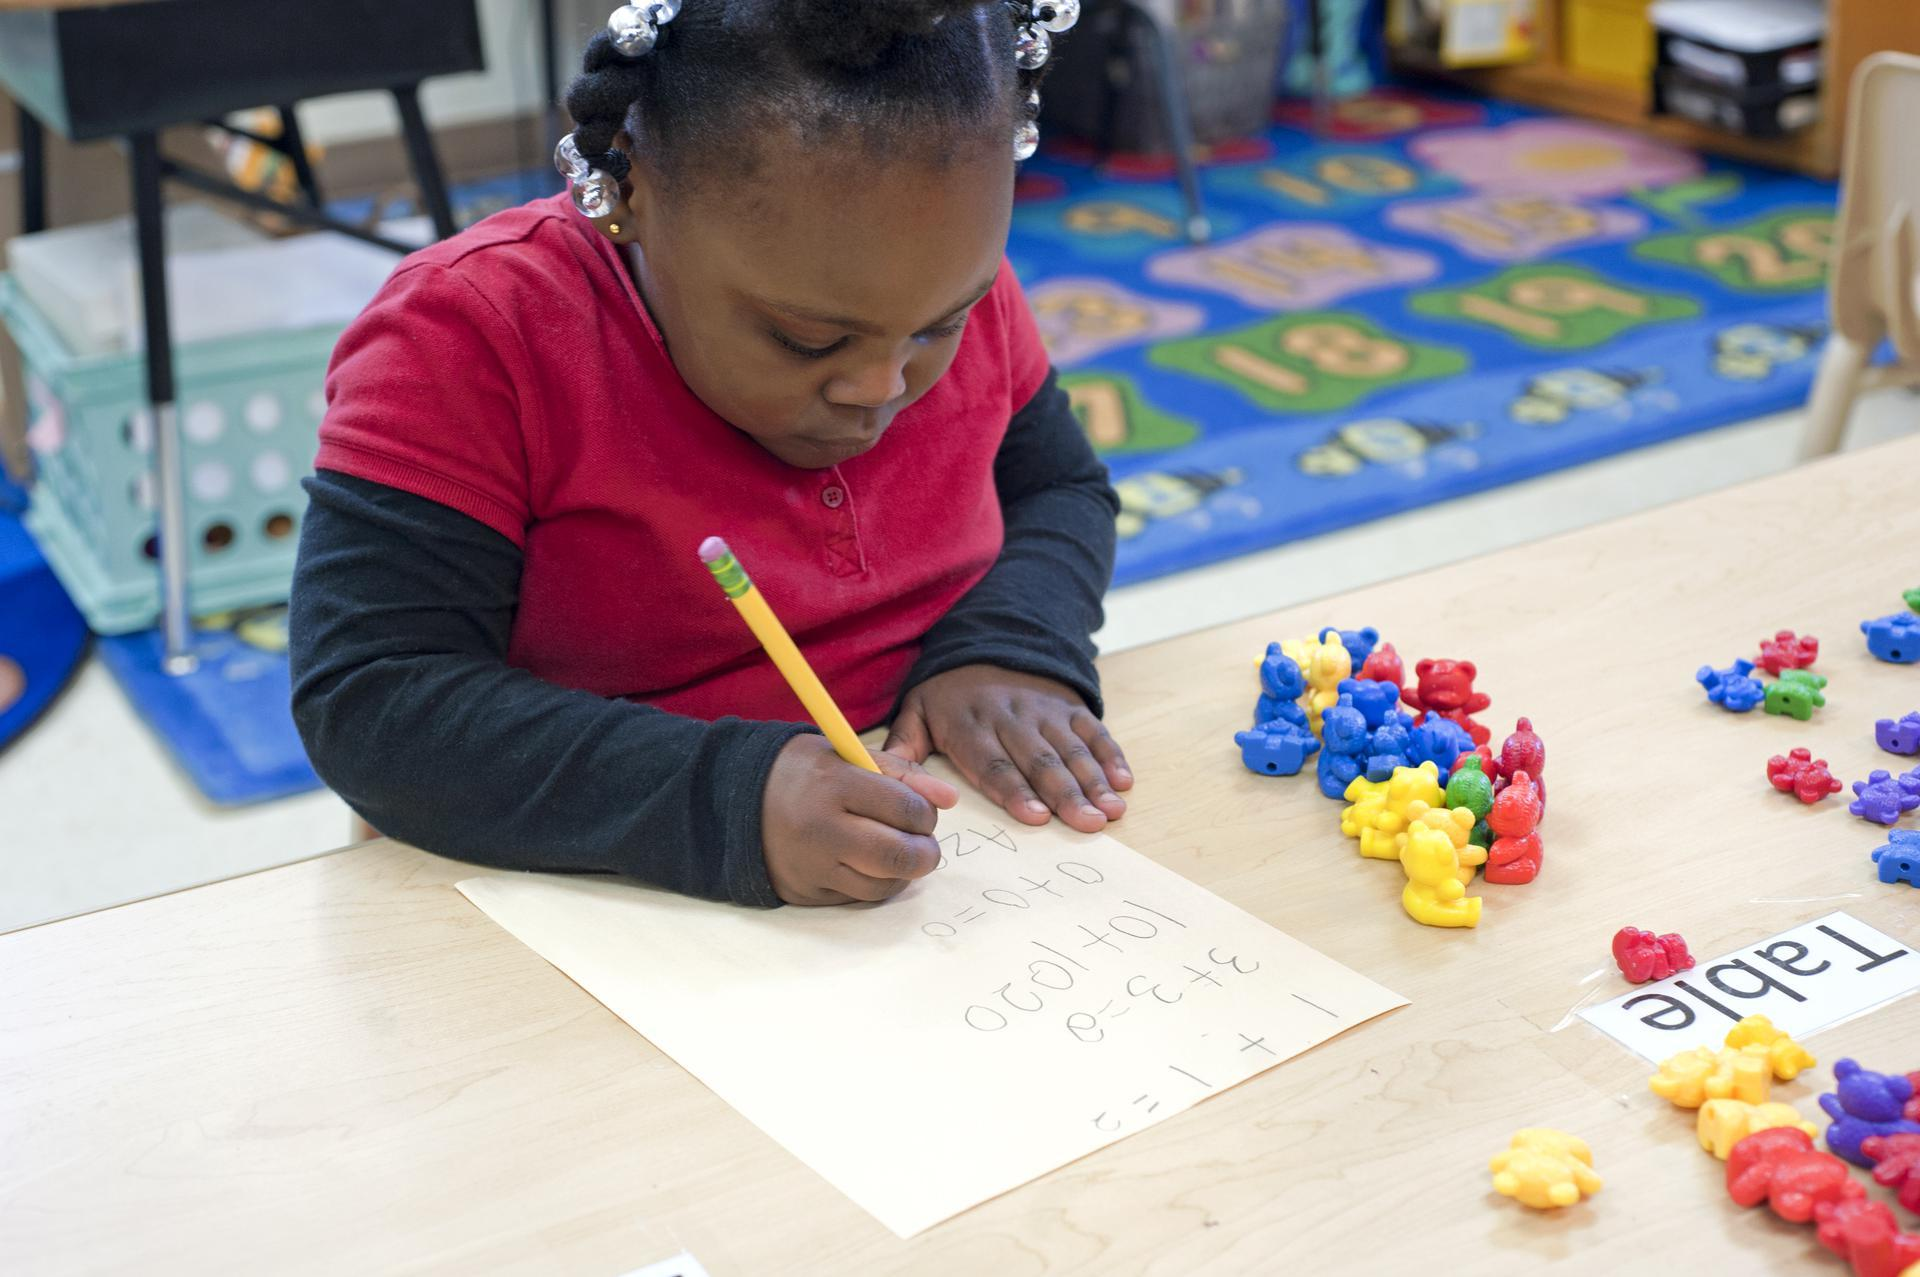 A 4-year-old kindergartner seated in a classroom uses a pencil to write on a sheet of paper